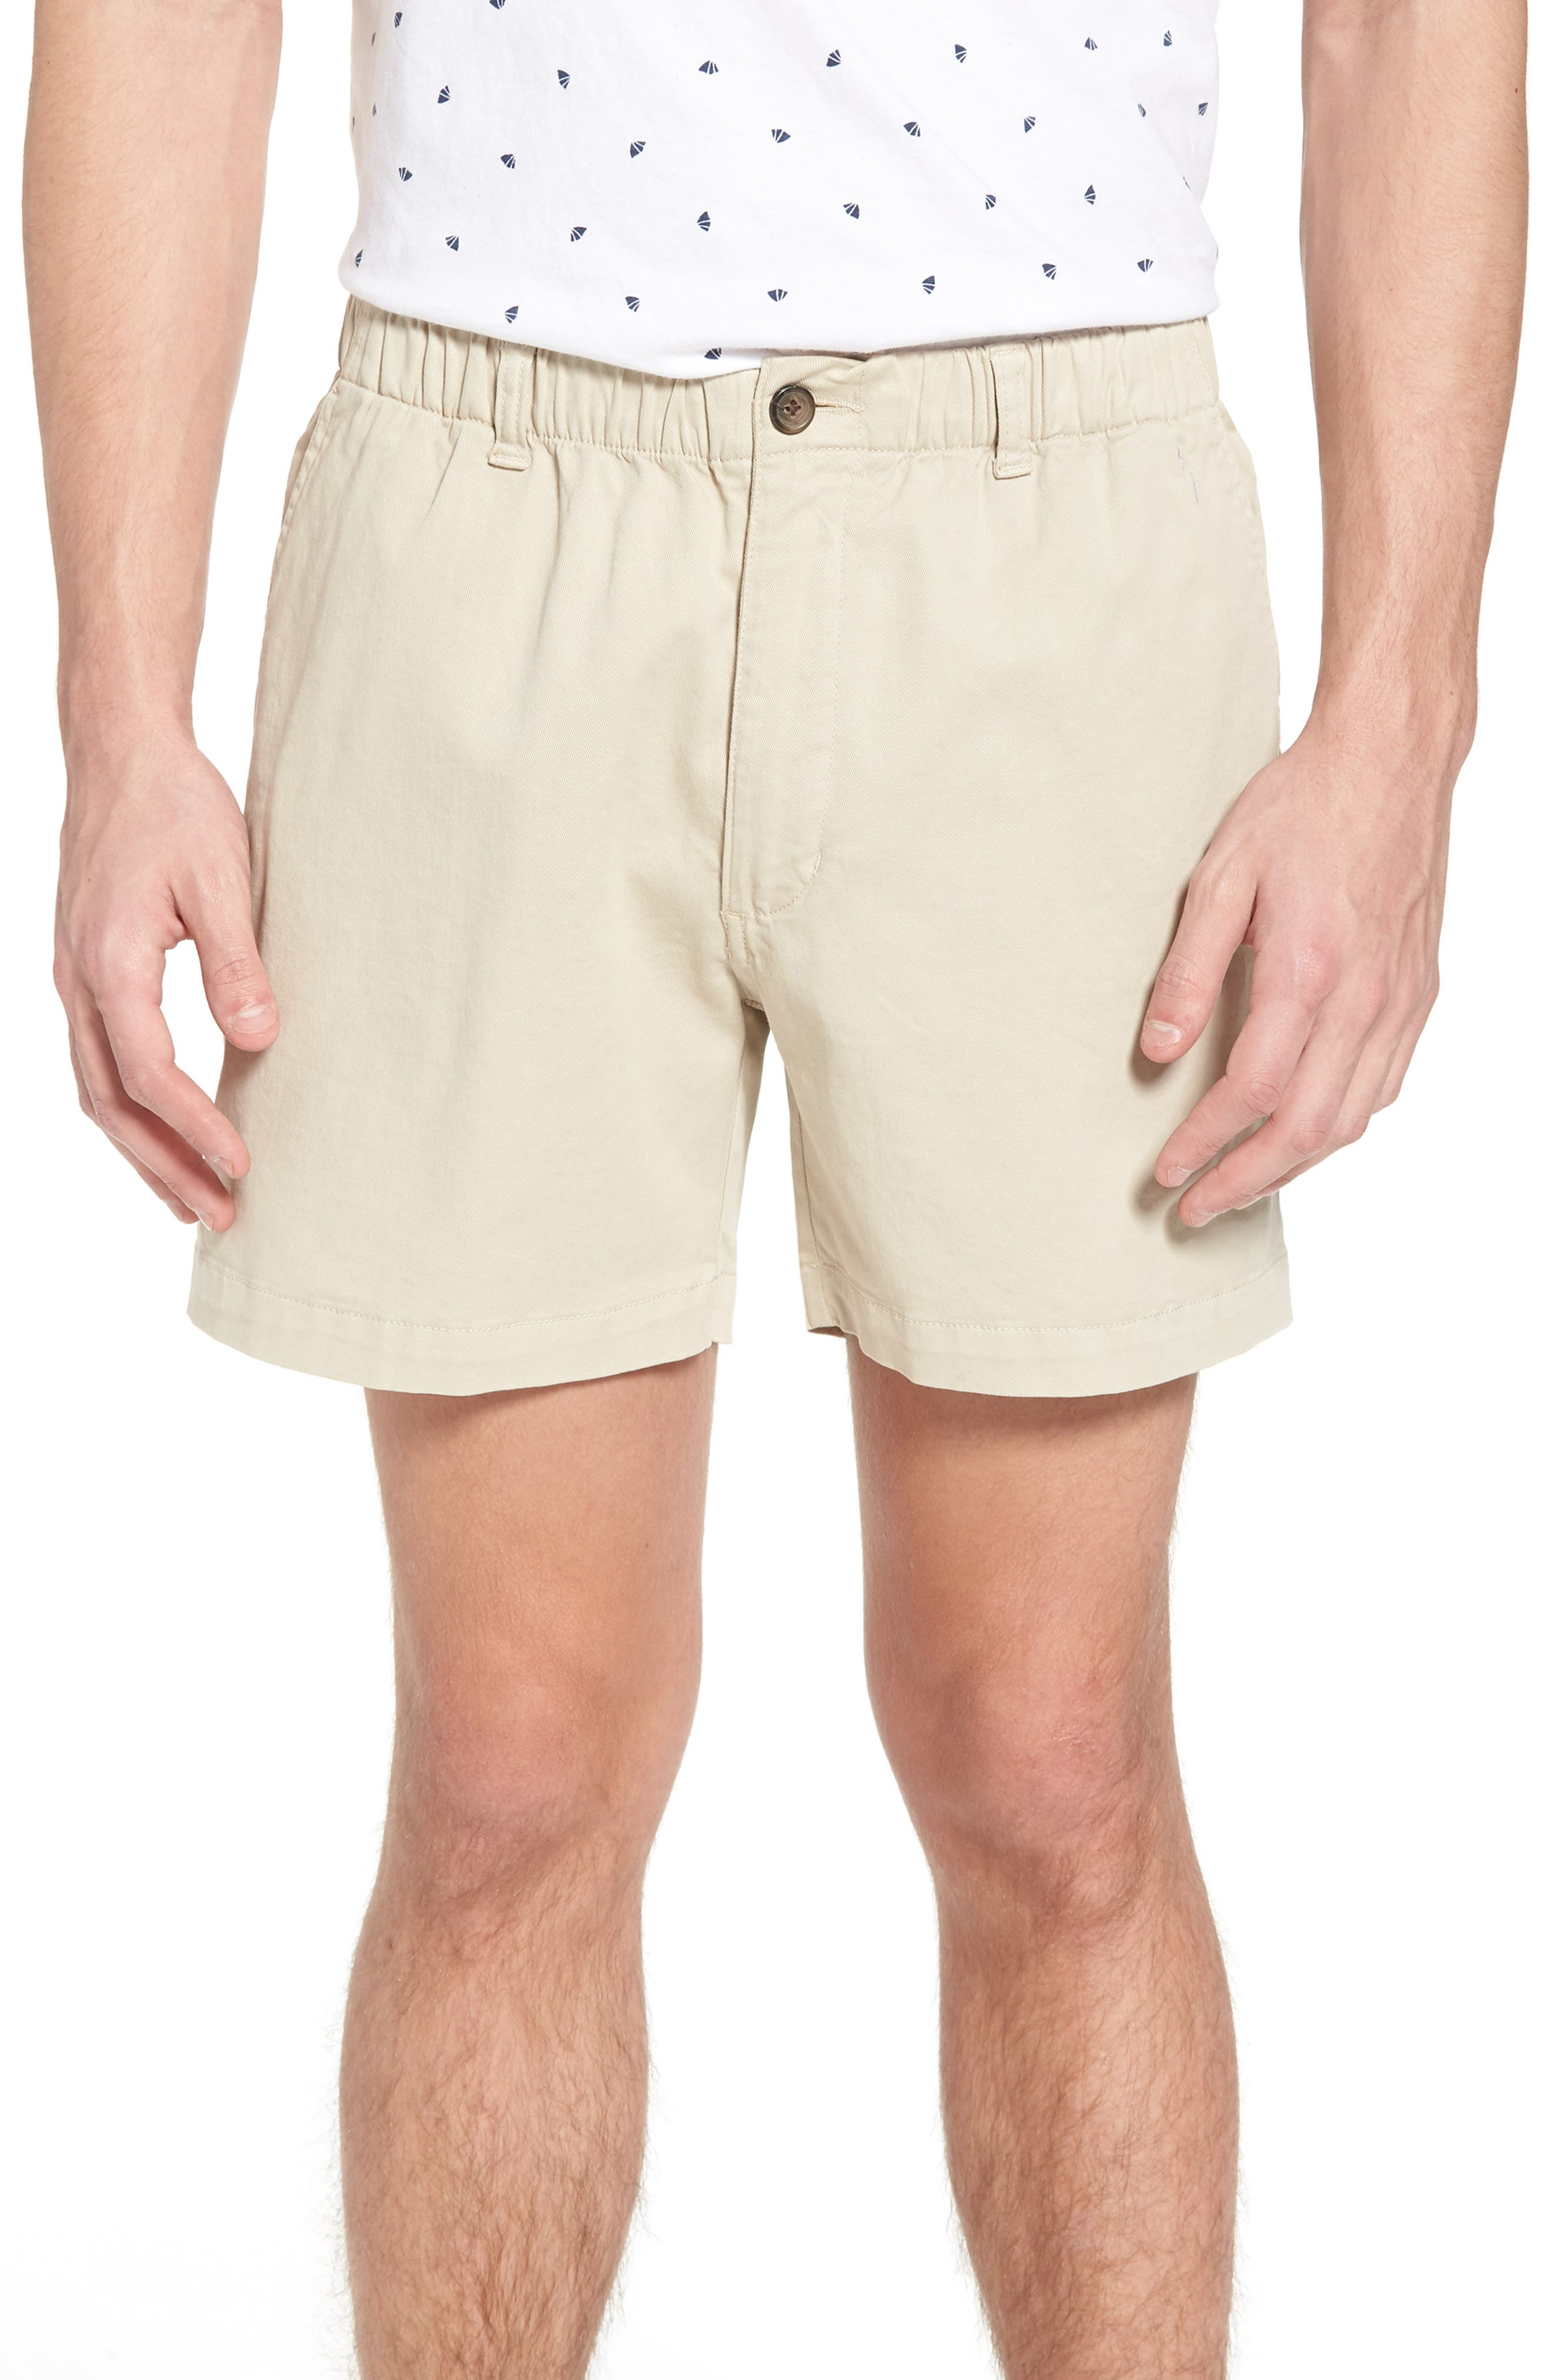 Snappers Elastic Waist 5.5 Inch Stretch Shorts,                         Main,                         color, STONE